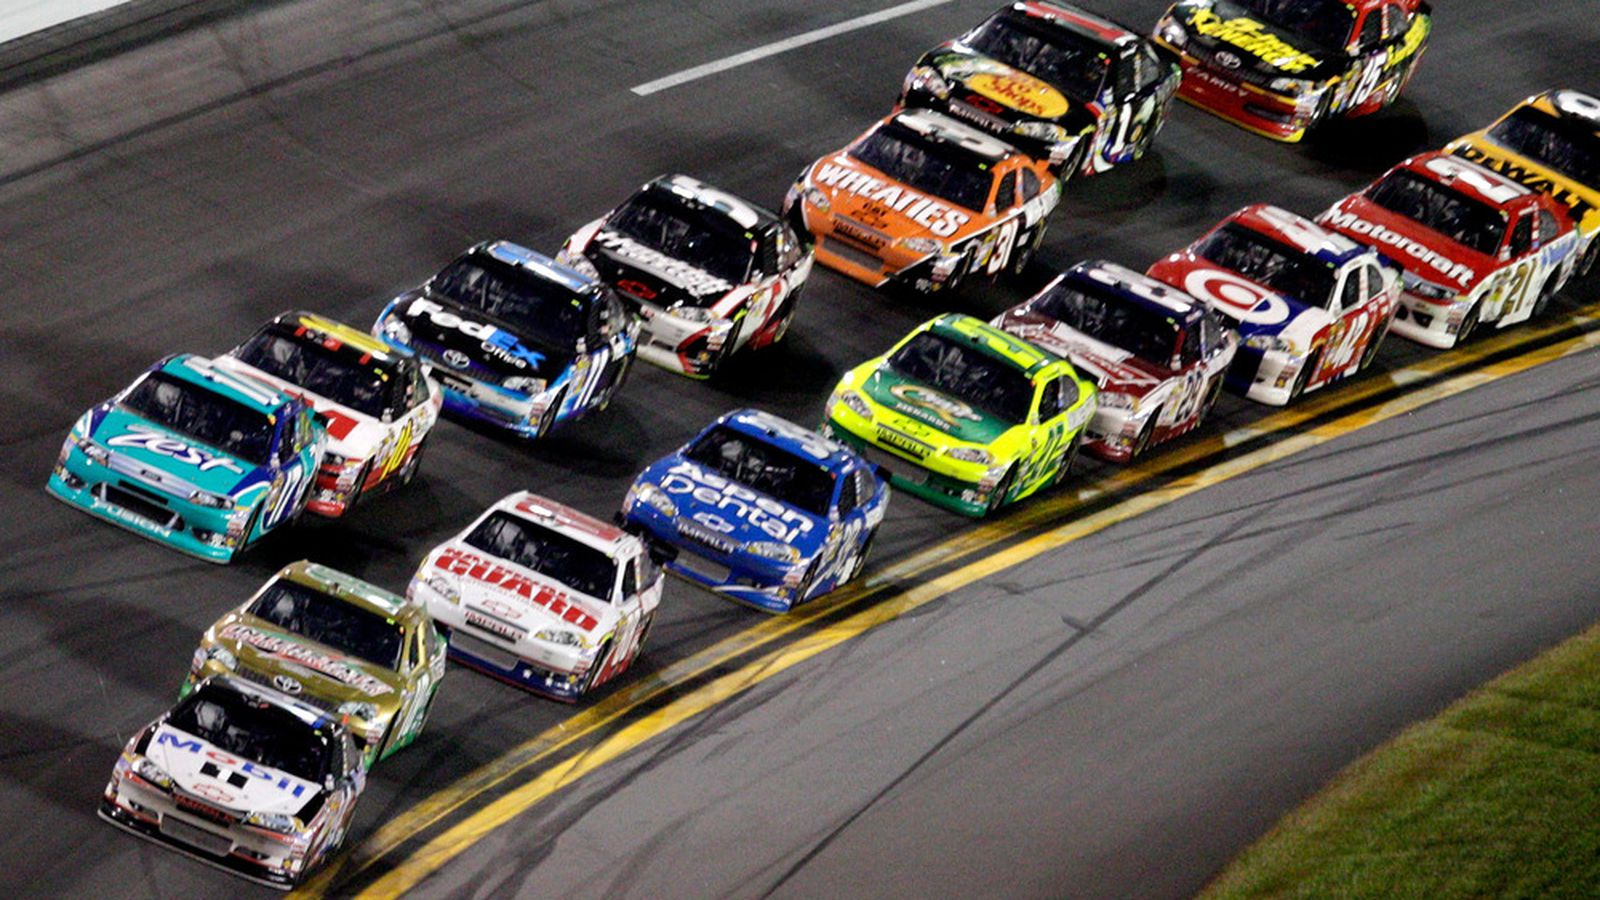 daytona speedway guide before attending events